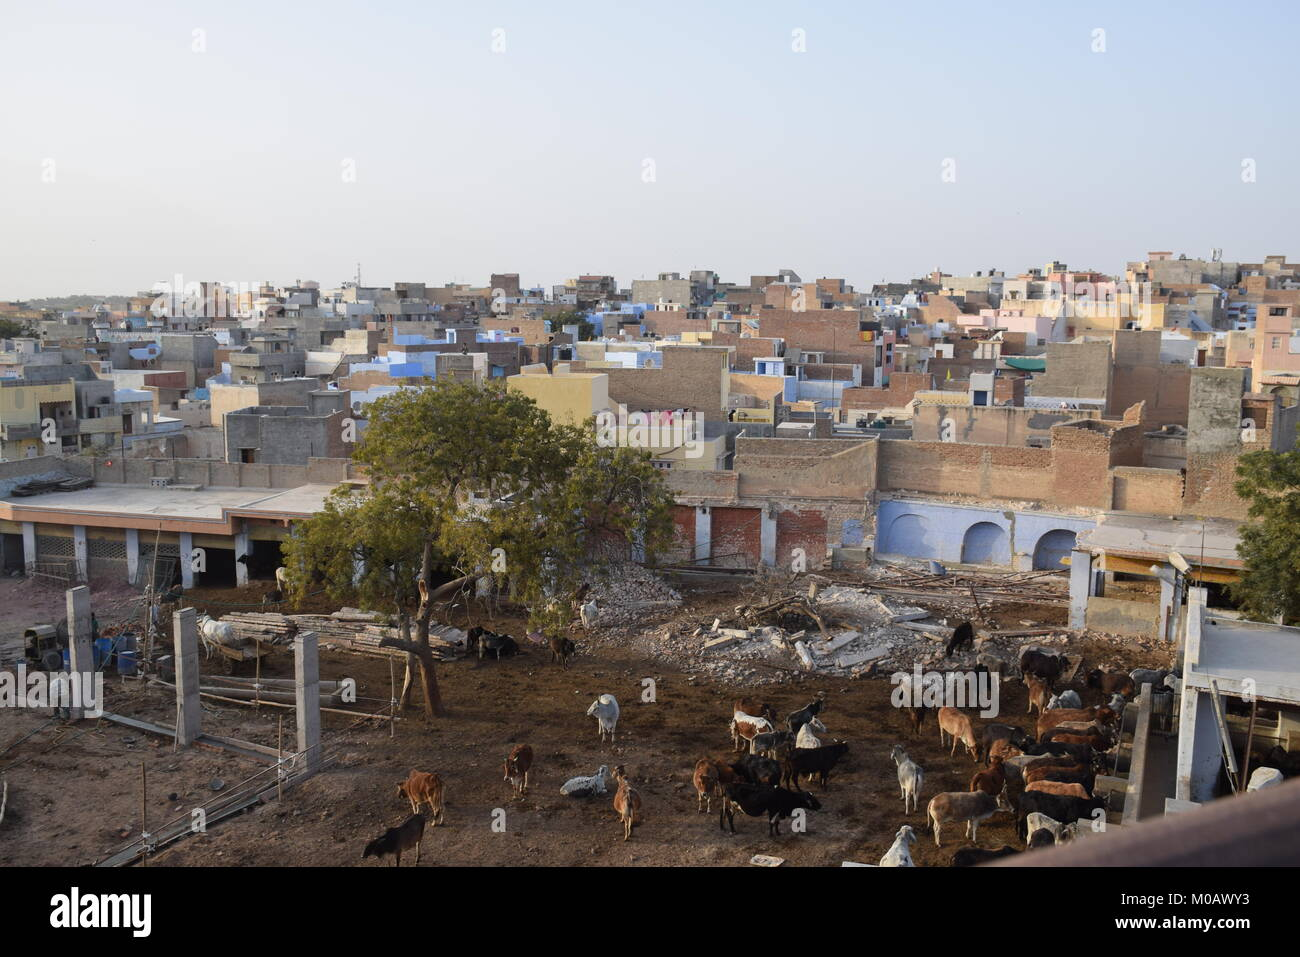 Overall view of the city of Bikaner in Rajasthan, India - Stock Image